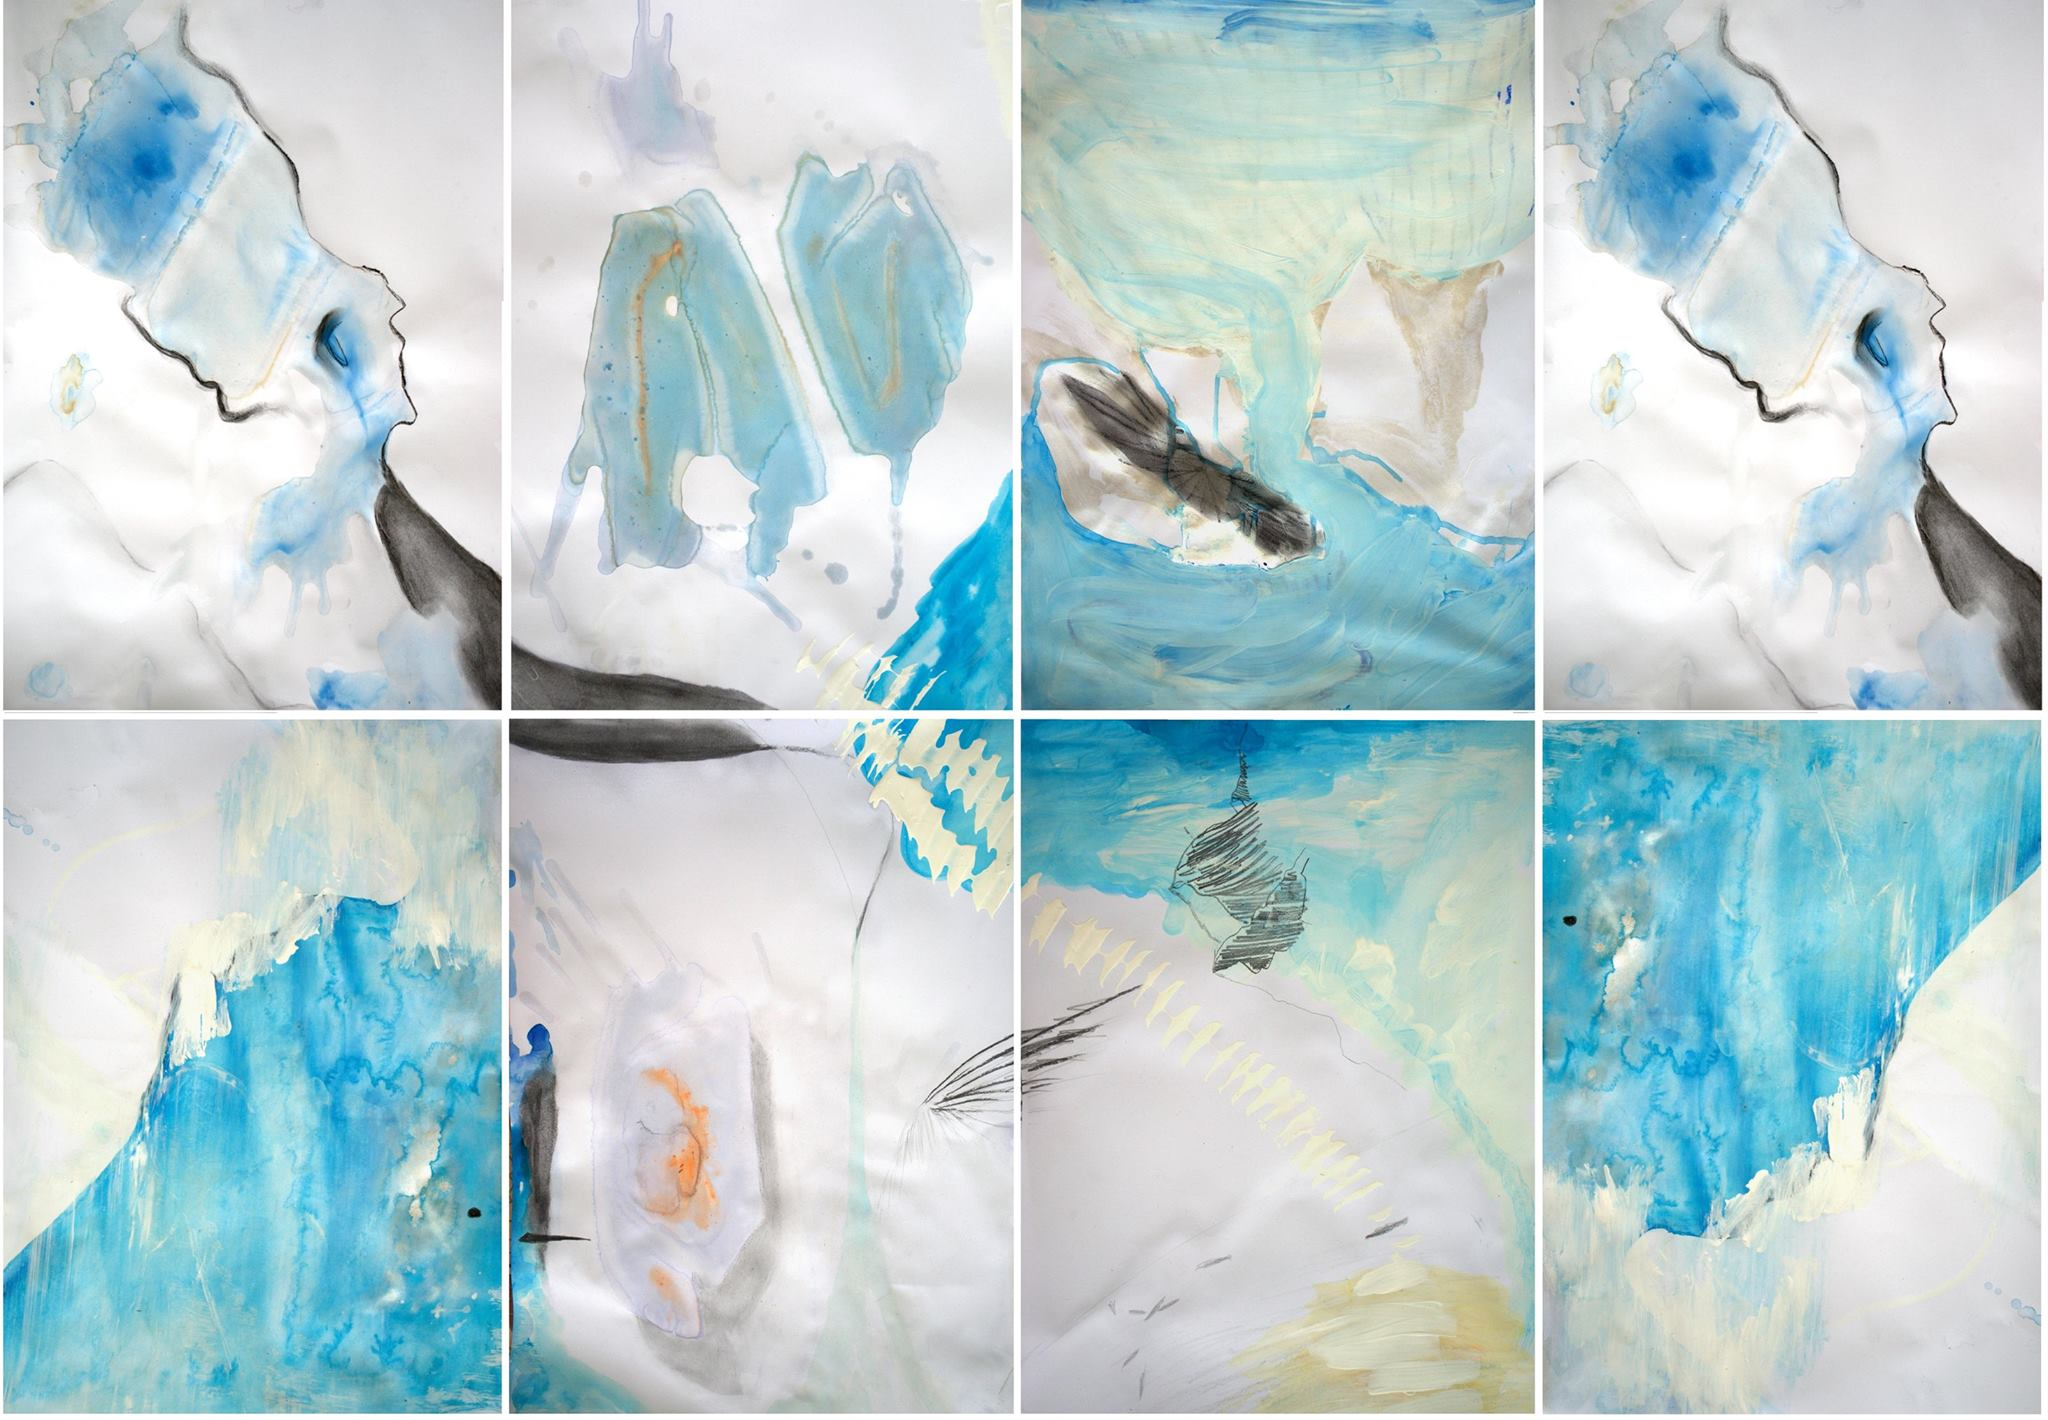 Aquarelle series: I drink life